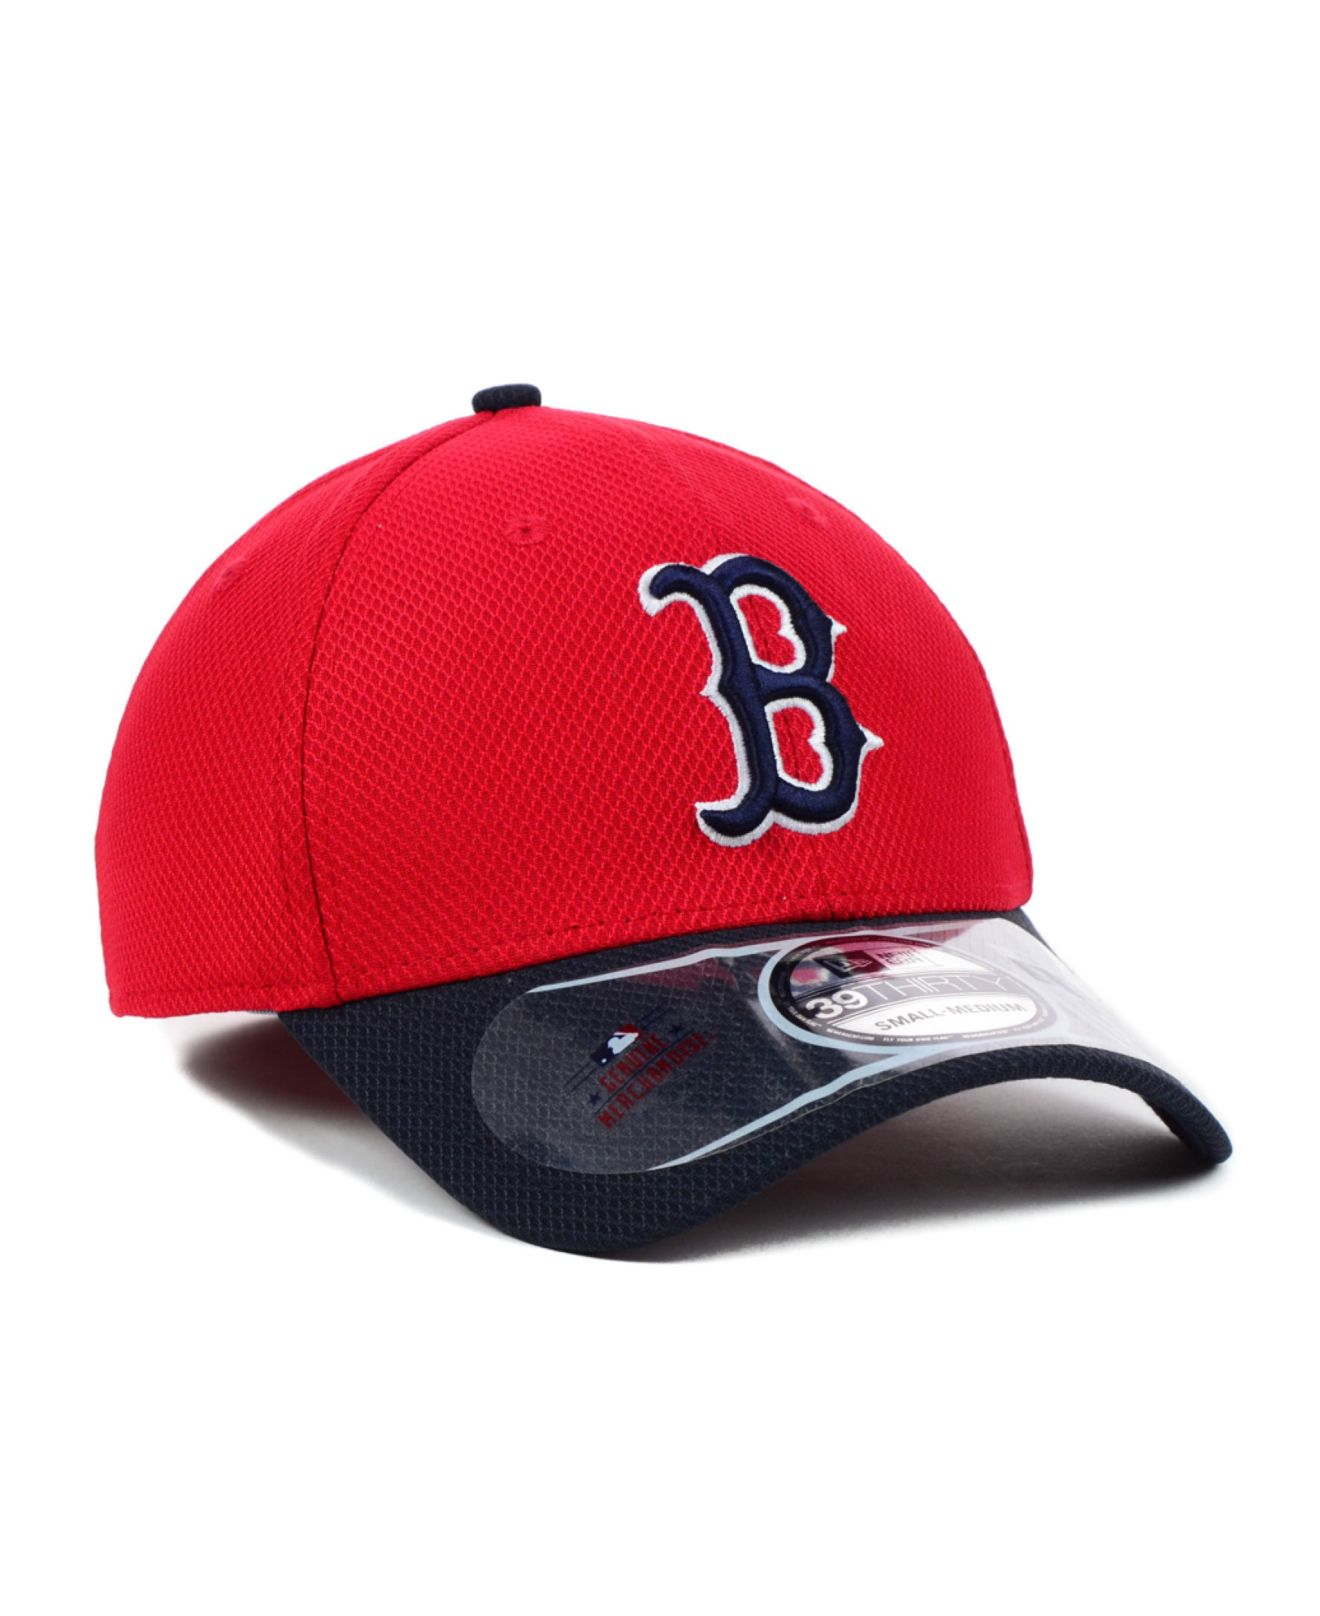 watch be29a 37da1 ... cap 19d30 coupon code for new era 39thirty red sox hat website 8c4aa  c4af5 ...